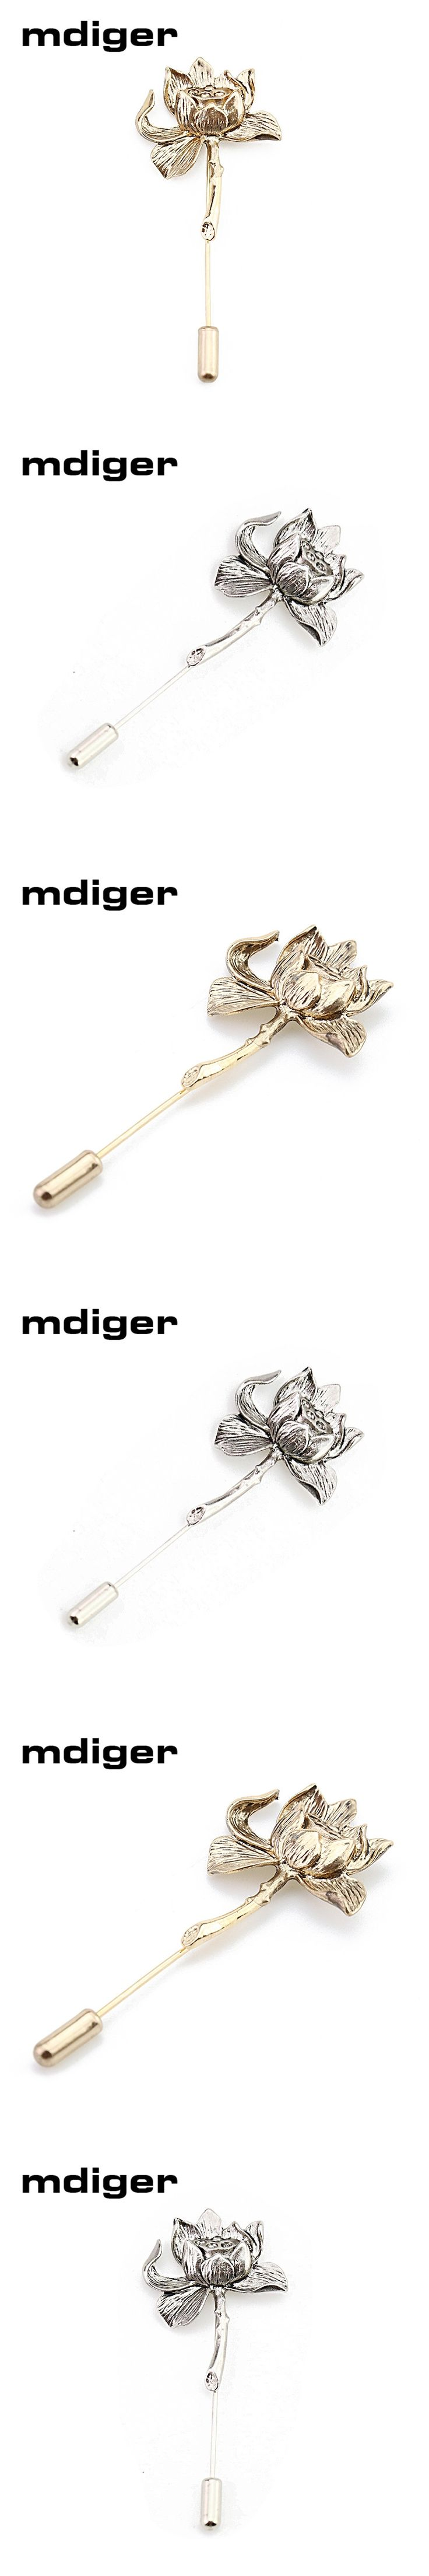 Mdiger Brand Silver/Gold Plated Metal Lotus Flower Brooch Collar Pins Men Shirt Wedding Brooch Lapel Pins Men Suit Accessories